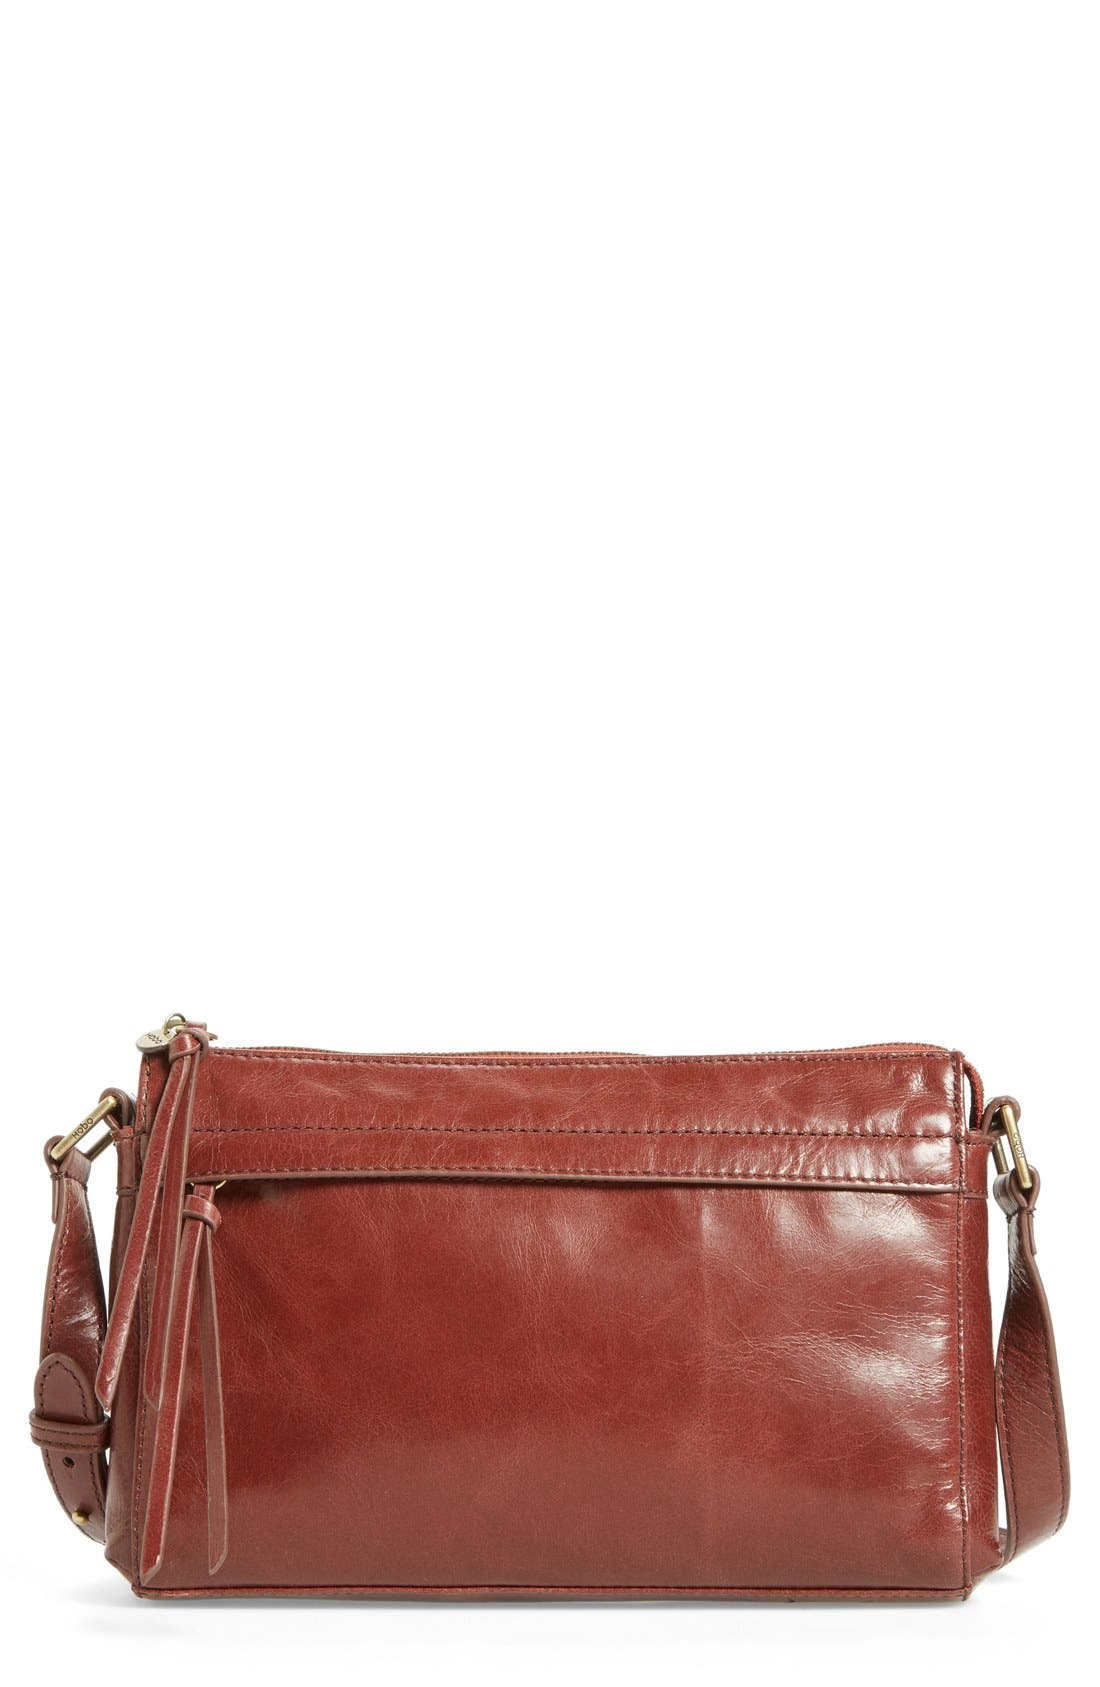 Tobey Leather Crossbody Bag,                             Main thumbnail 6, color,